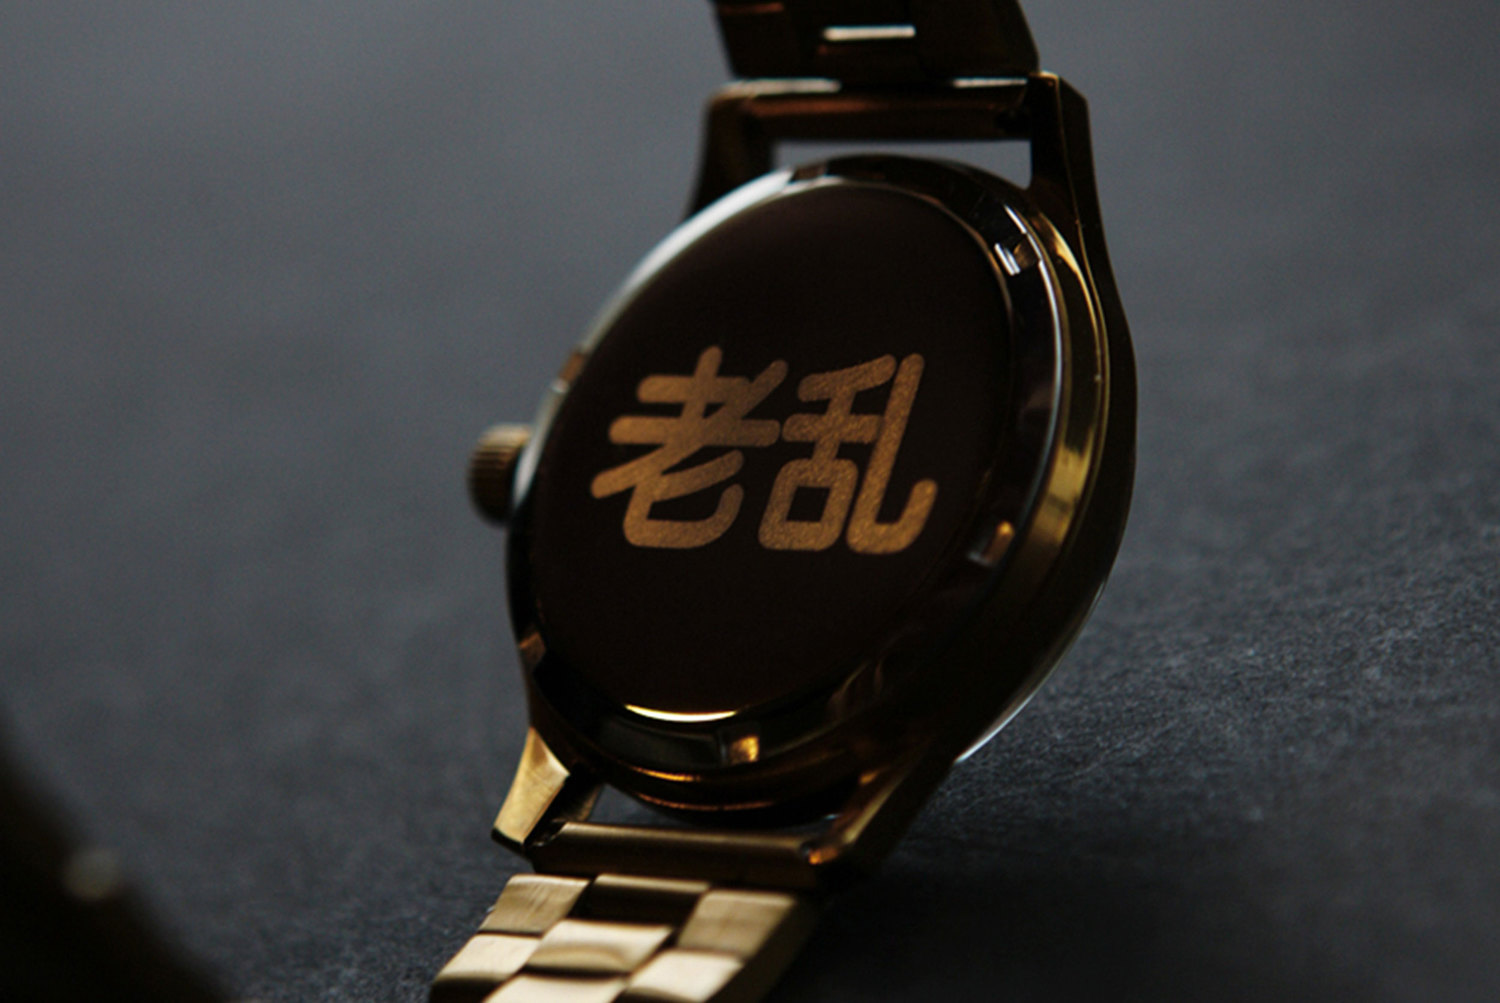 The Chinese characters on the back of the watch say 'Lao luan' - 'Old chaos' in mandarin, but in Shanghai dialect, it reads 'Lao lu' - 'Fucking cool'